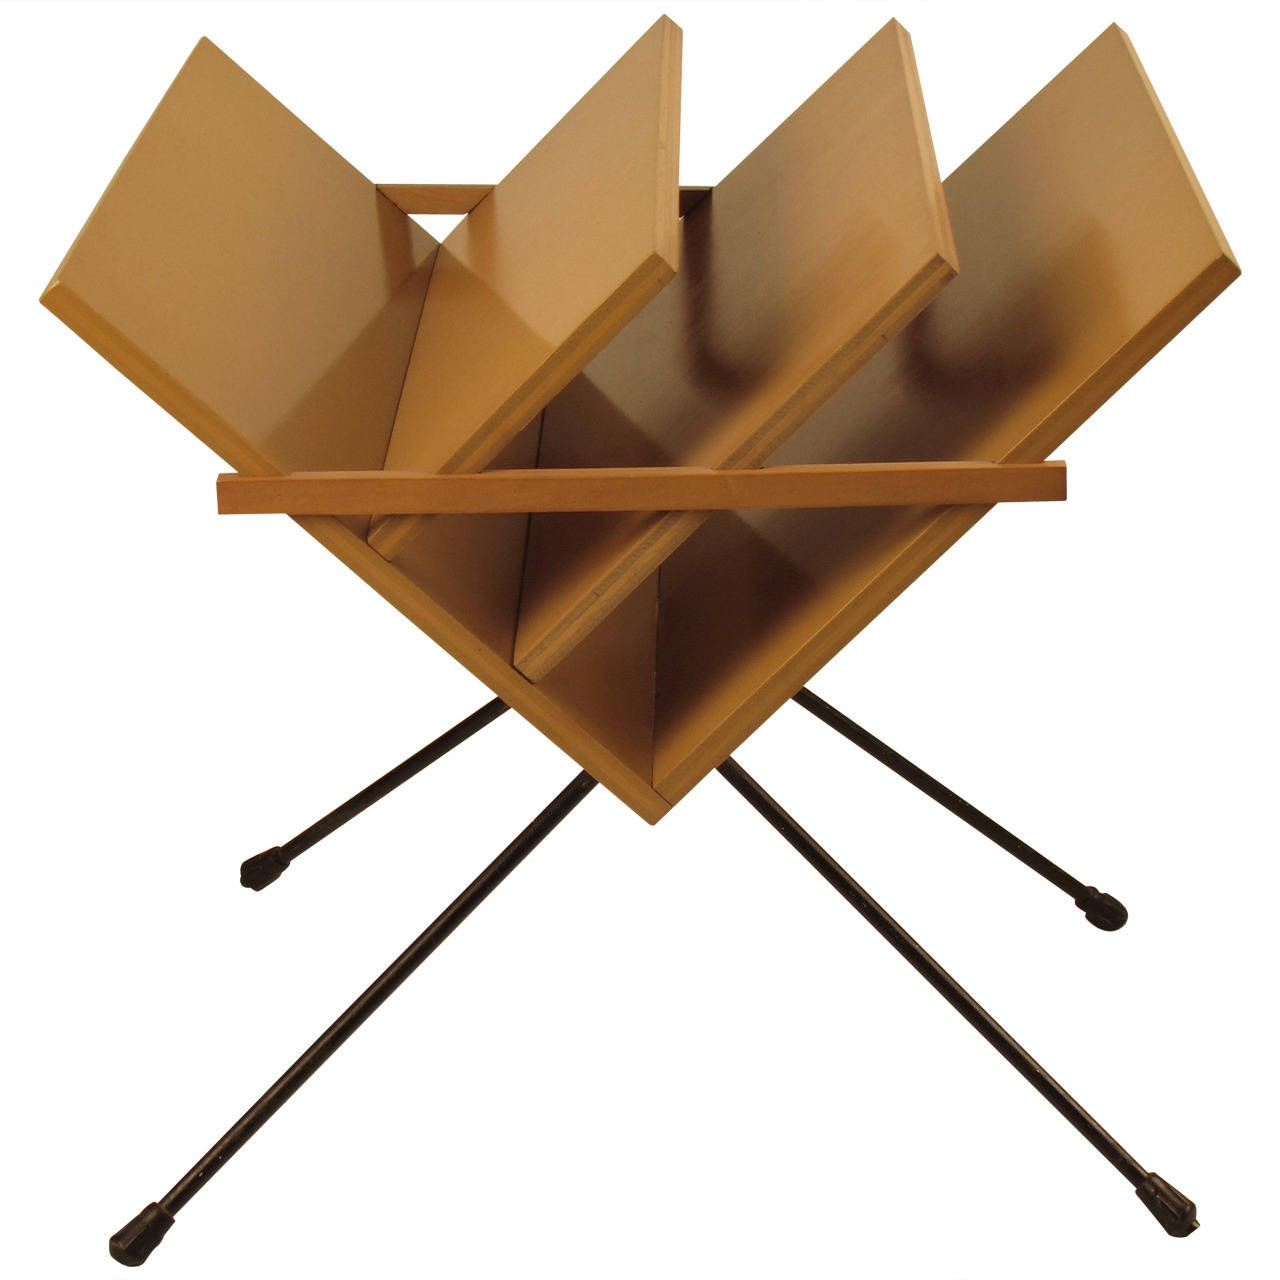 unusual s european modern magazine rack with hairpin legs. unusual s european modern magazine rack with hairpin legs